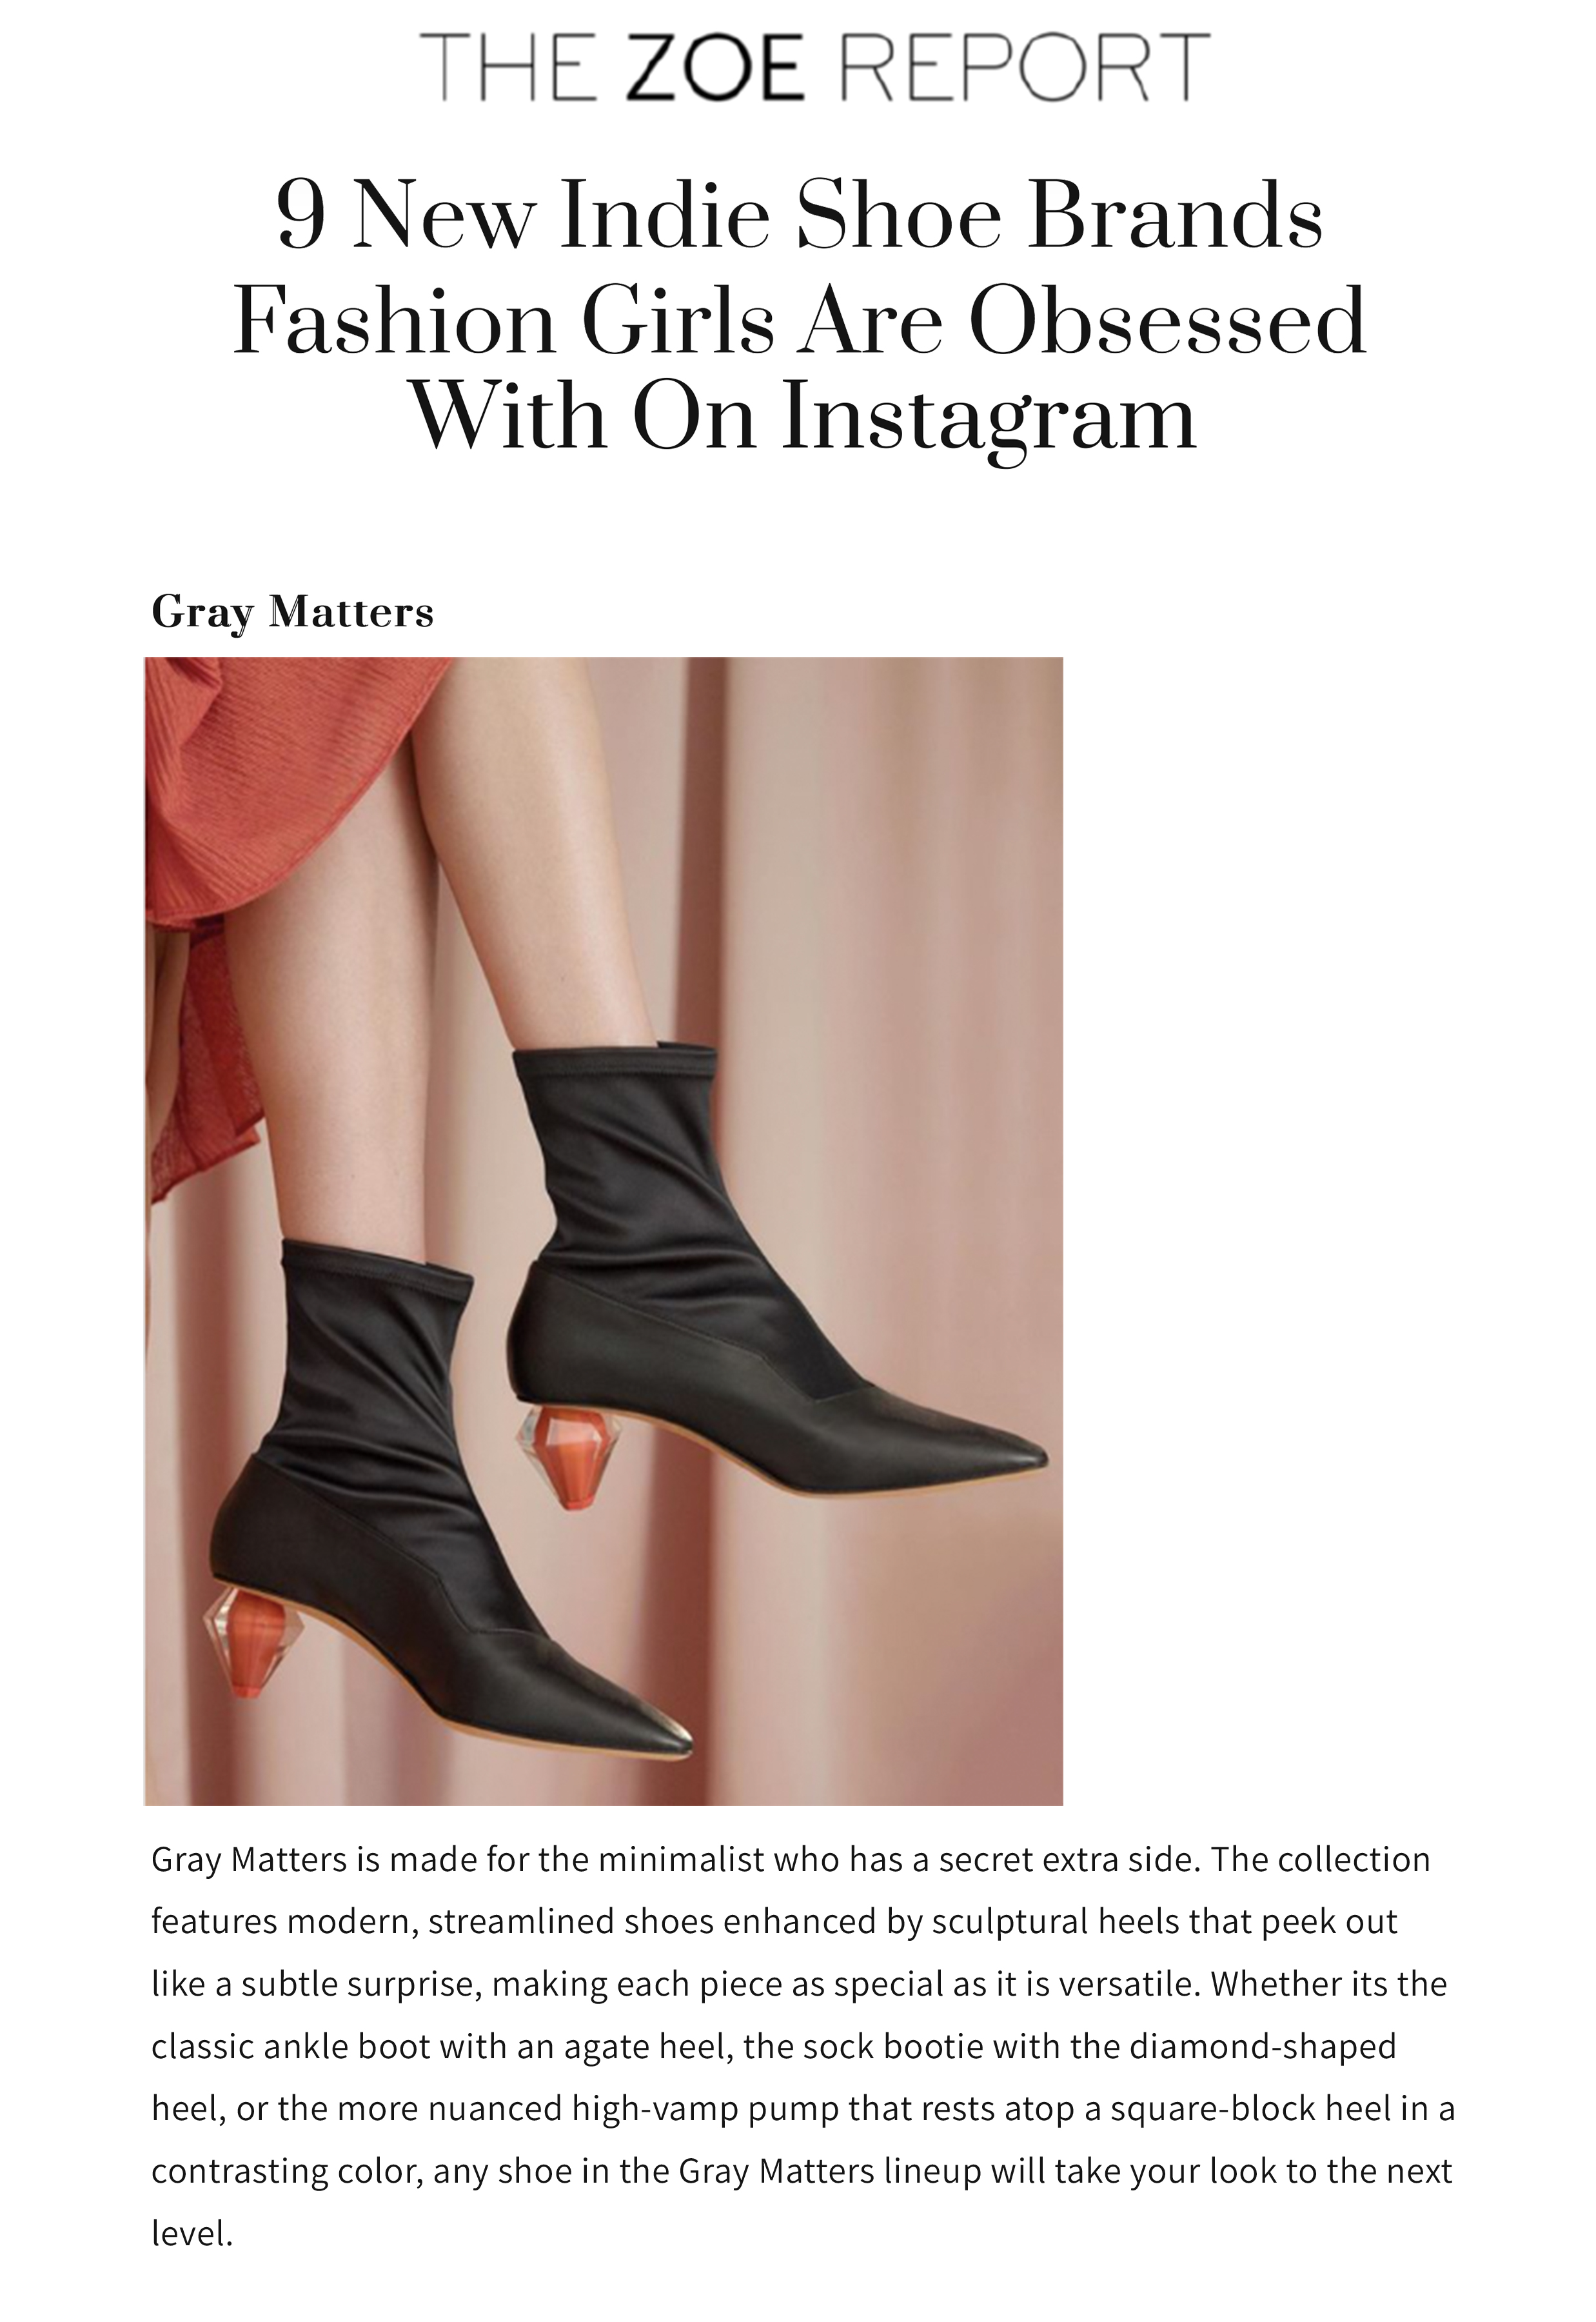 9 New Indie Shoe Brands Fashion Girls Are Obsessed With On Instagram-2.jpg